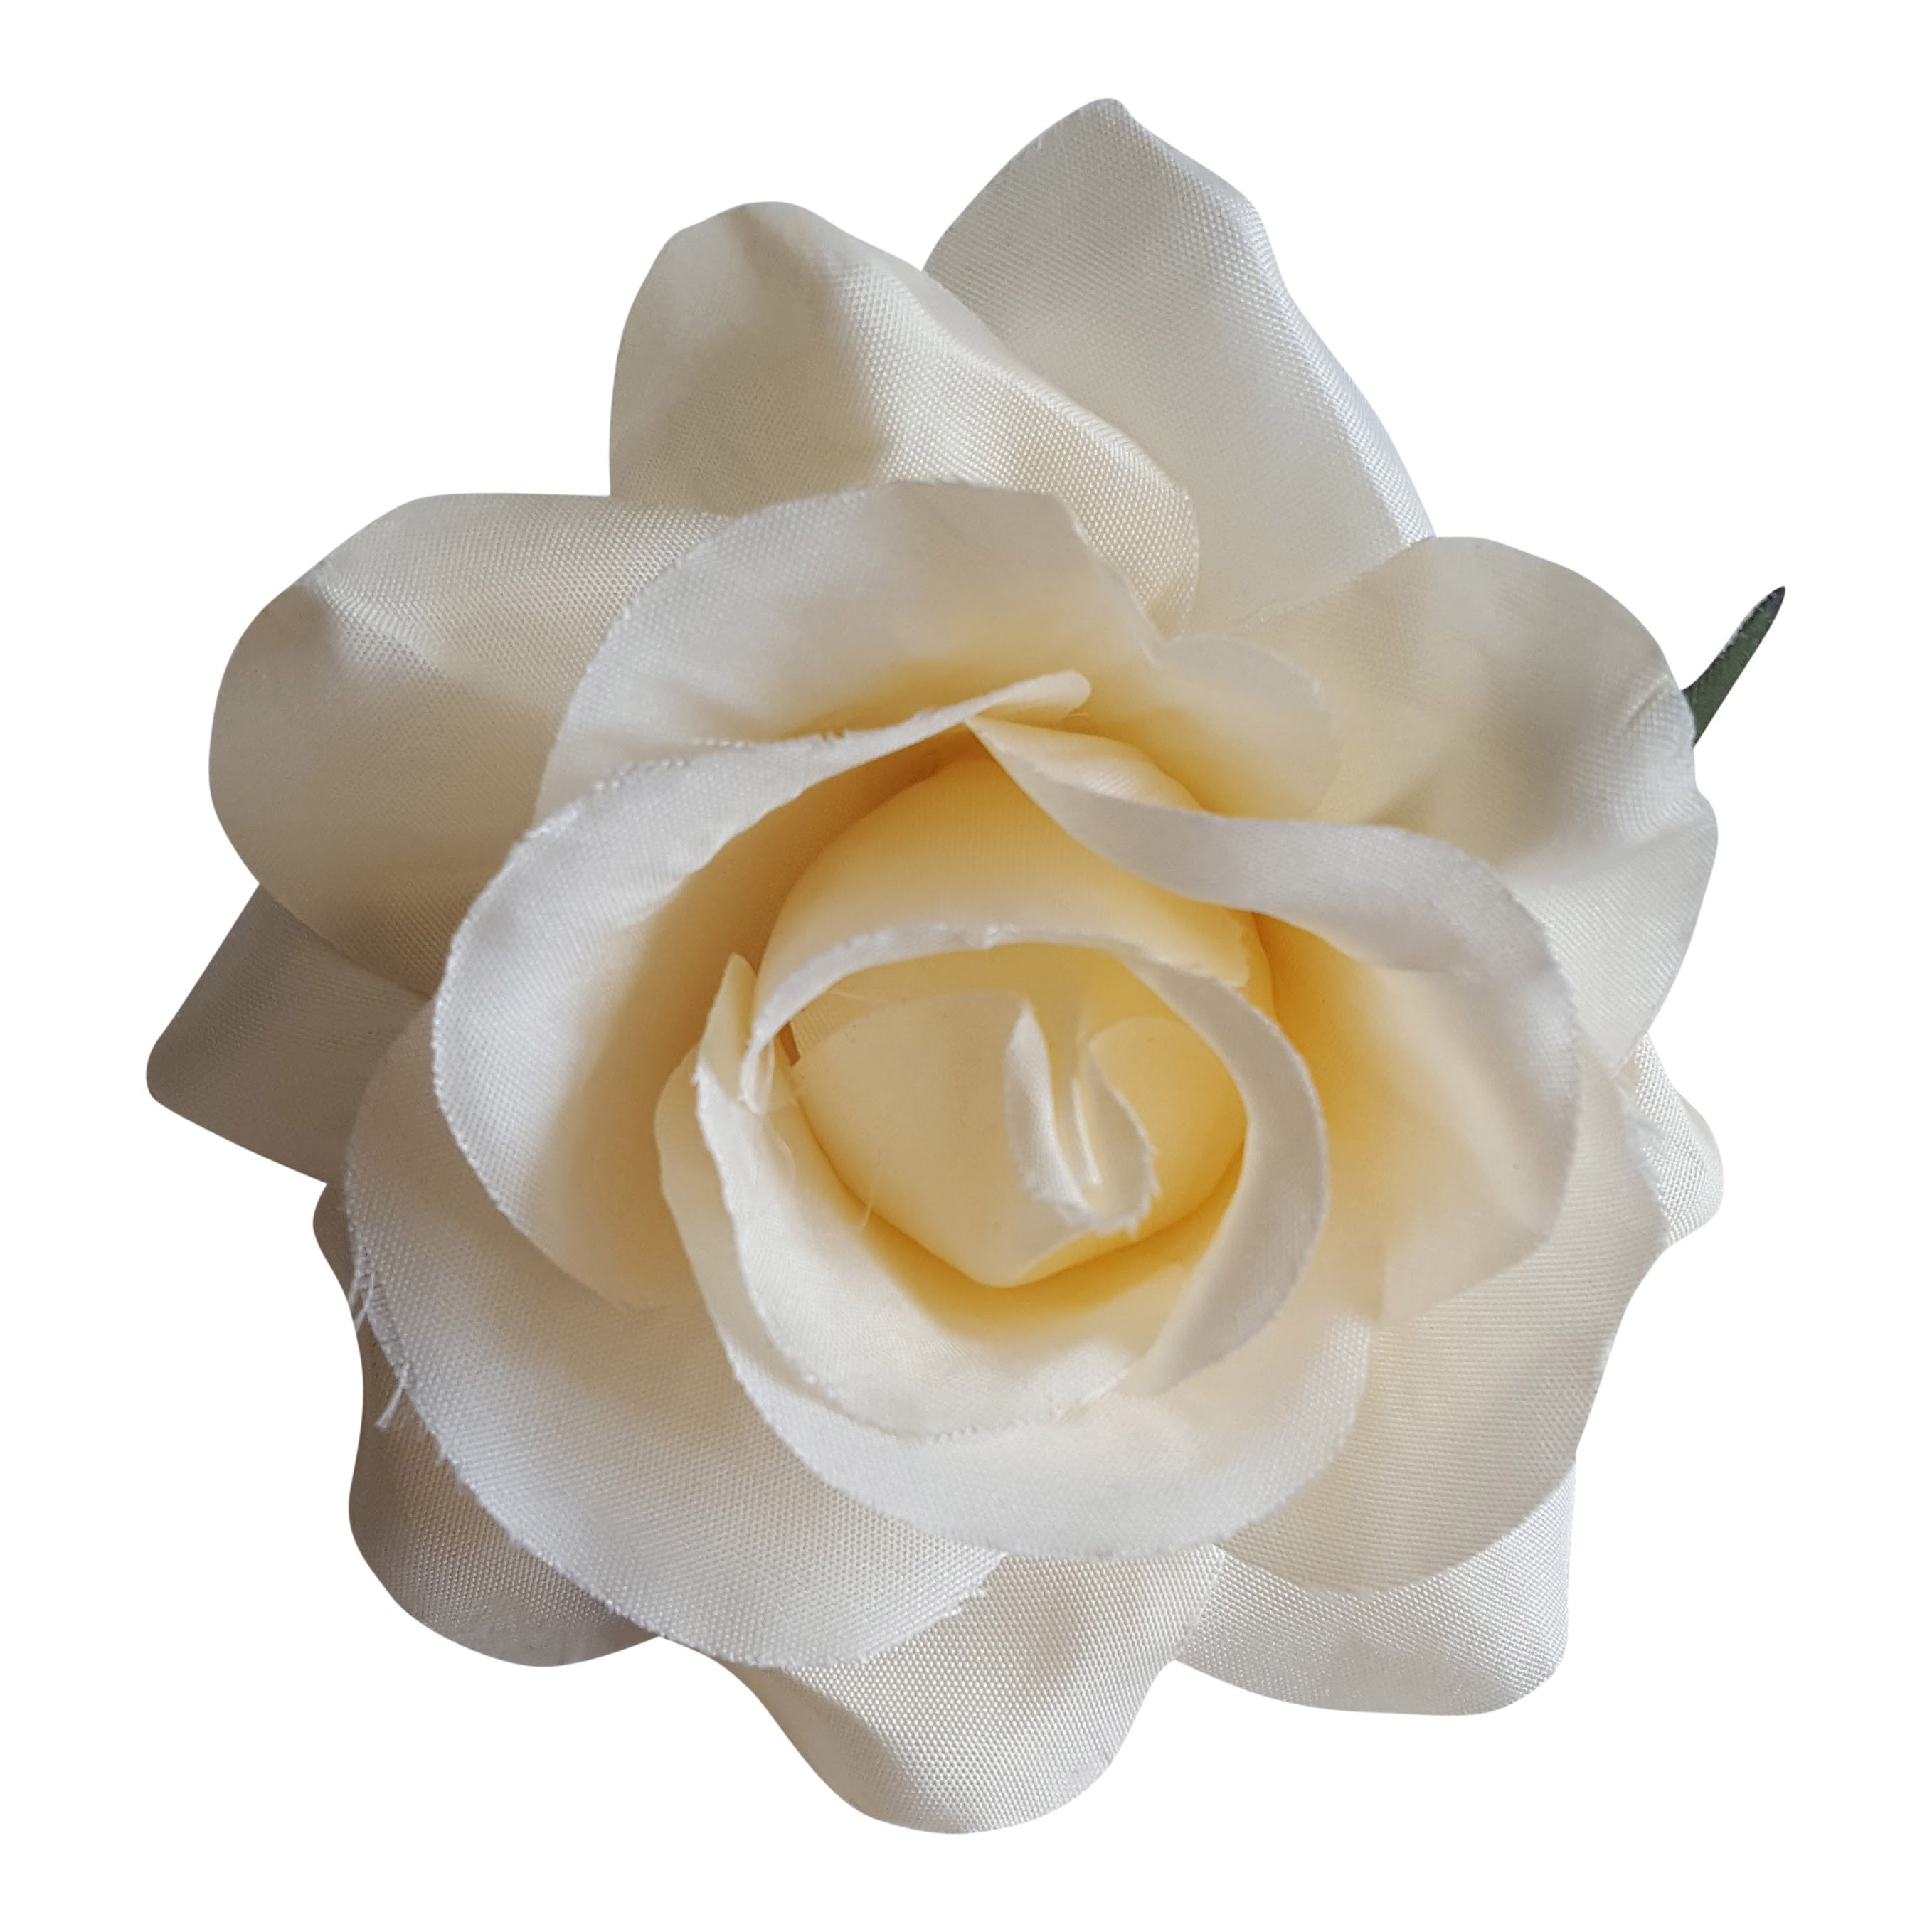 Small Cream Hair Flower Corsage Brooch The Bridal Outlet